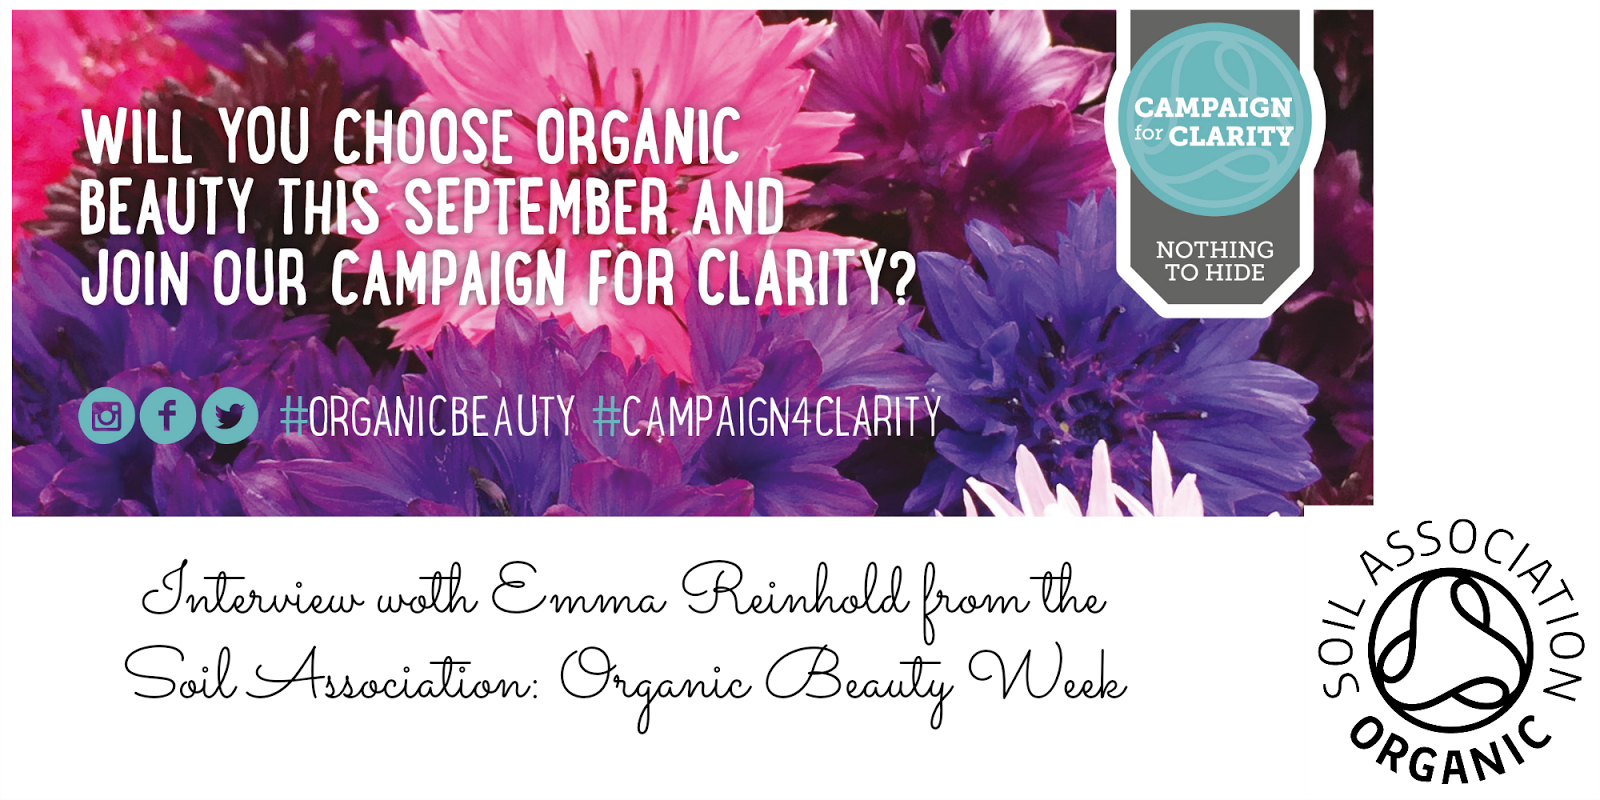 Chatting Organic Beauty Week with the Soil Association